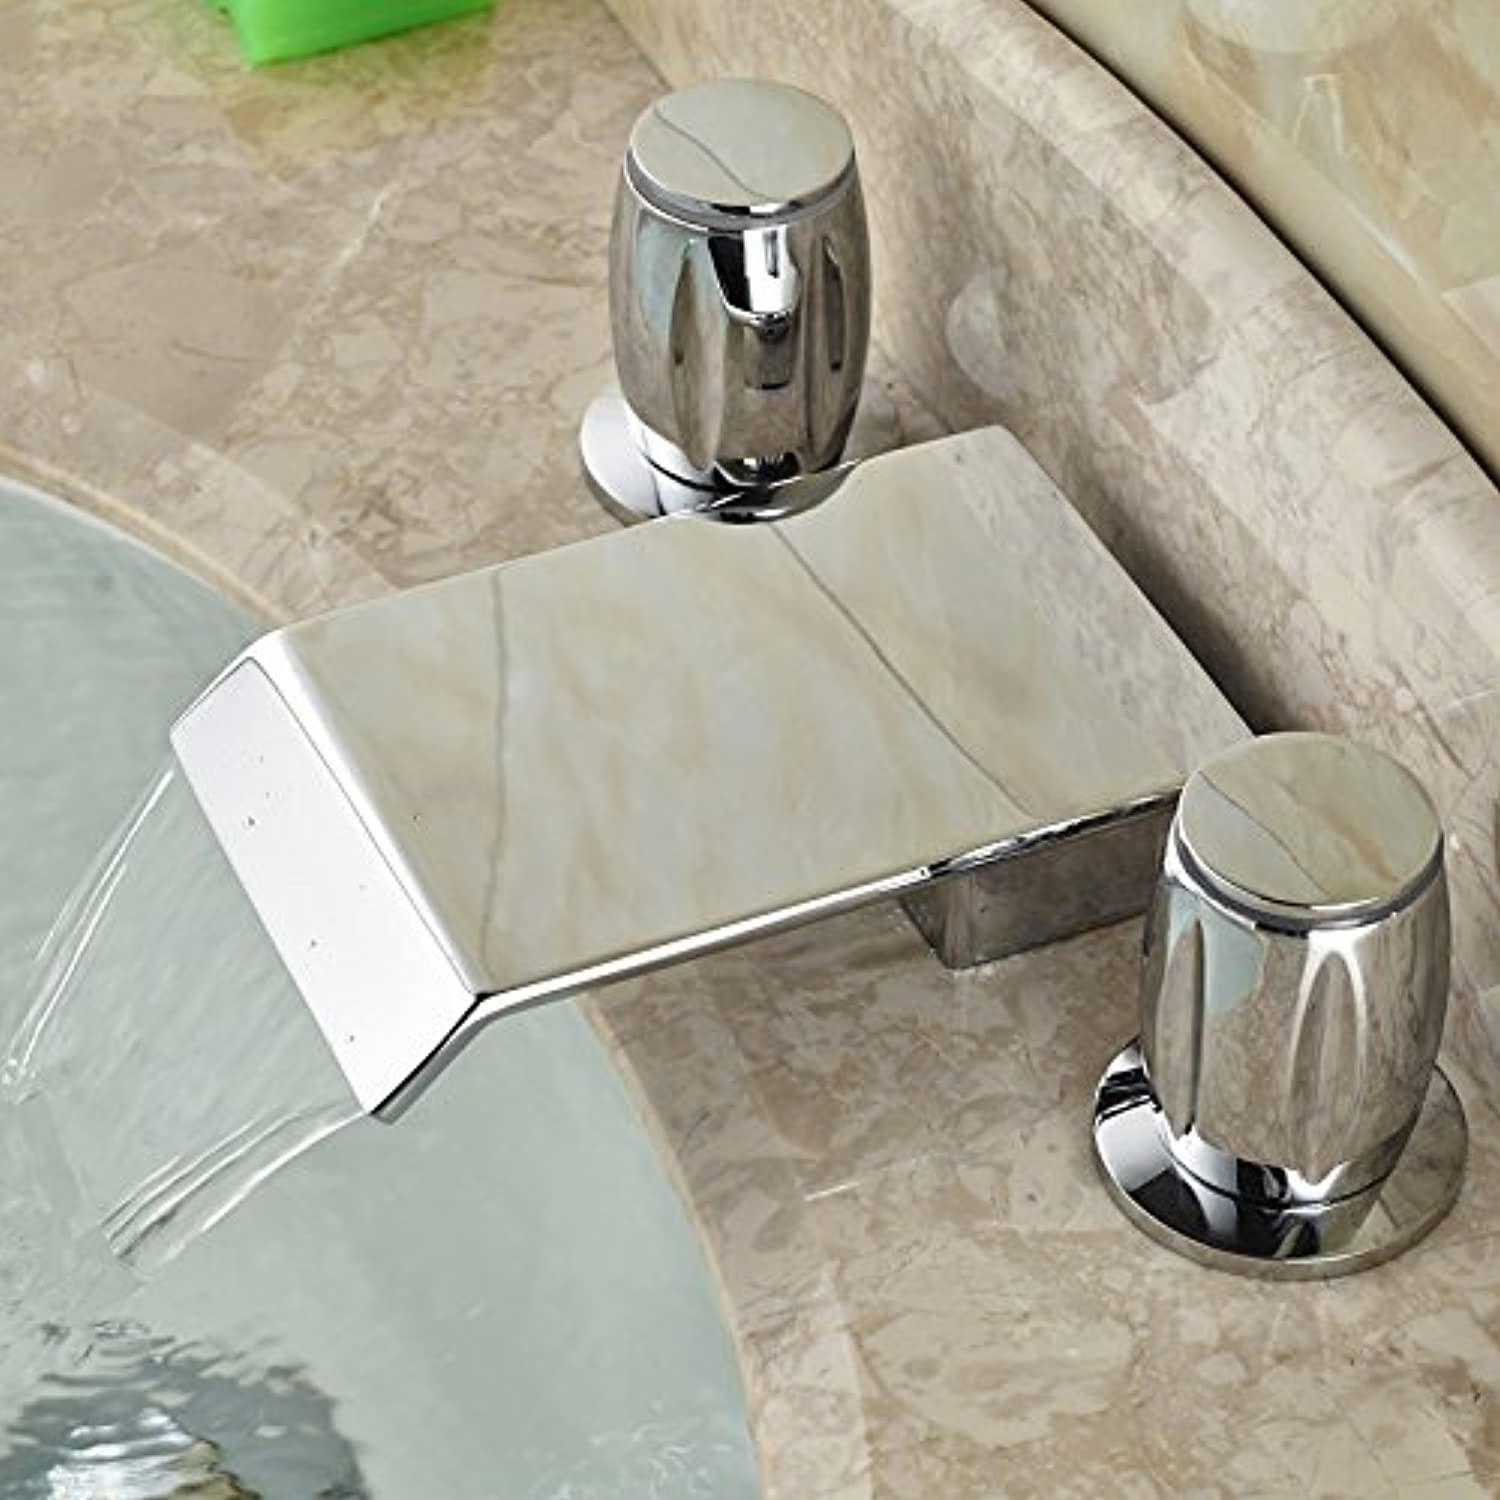 U-Enjoy Brass Chrome Widespread Top Quality Two Handles Water Taps Deck Mounted 3 Install Holes Bathroom Lavatory Sink Mixer Faucet (Free Shipping)